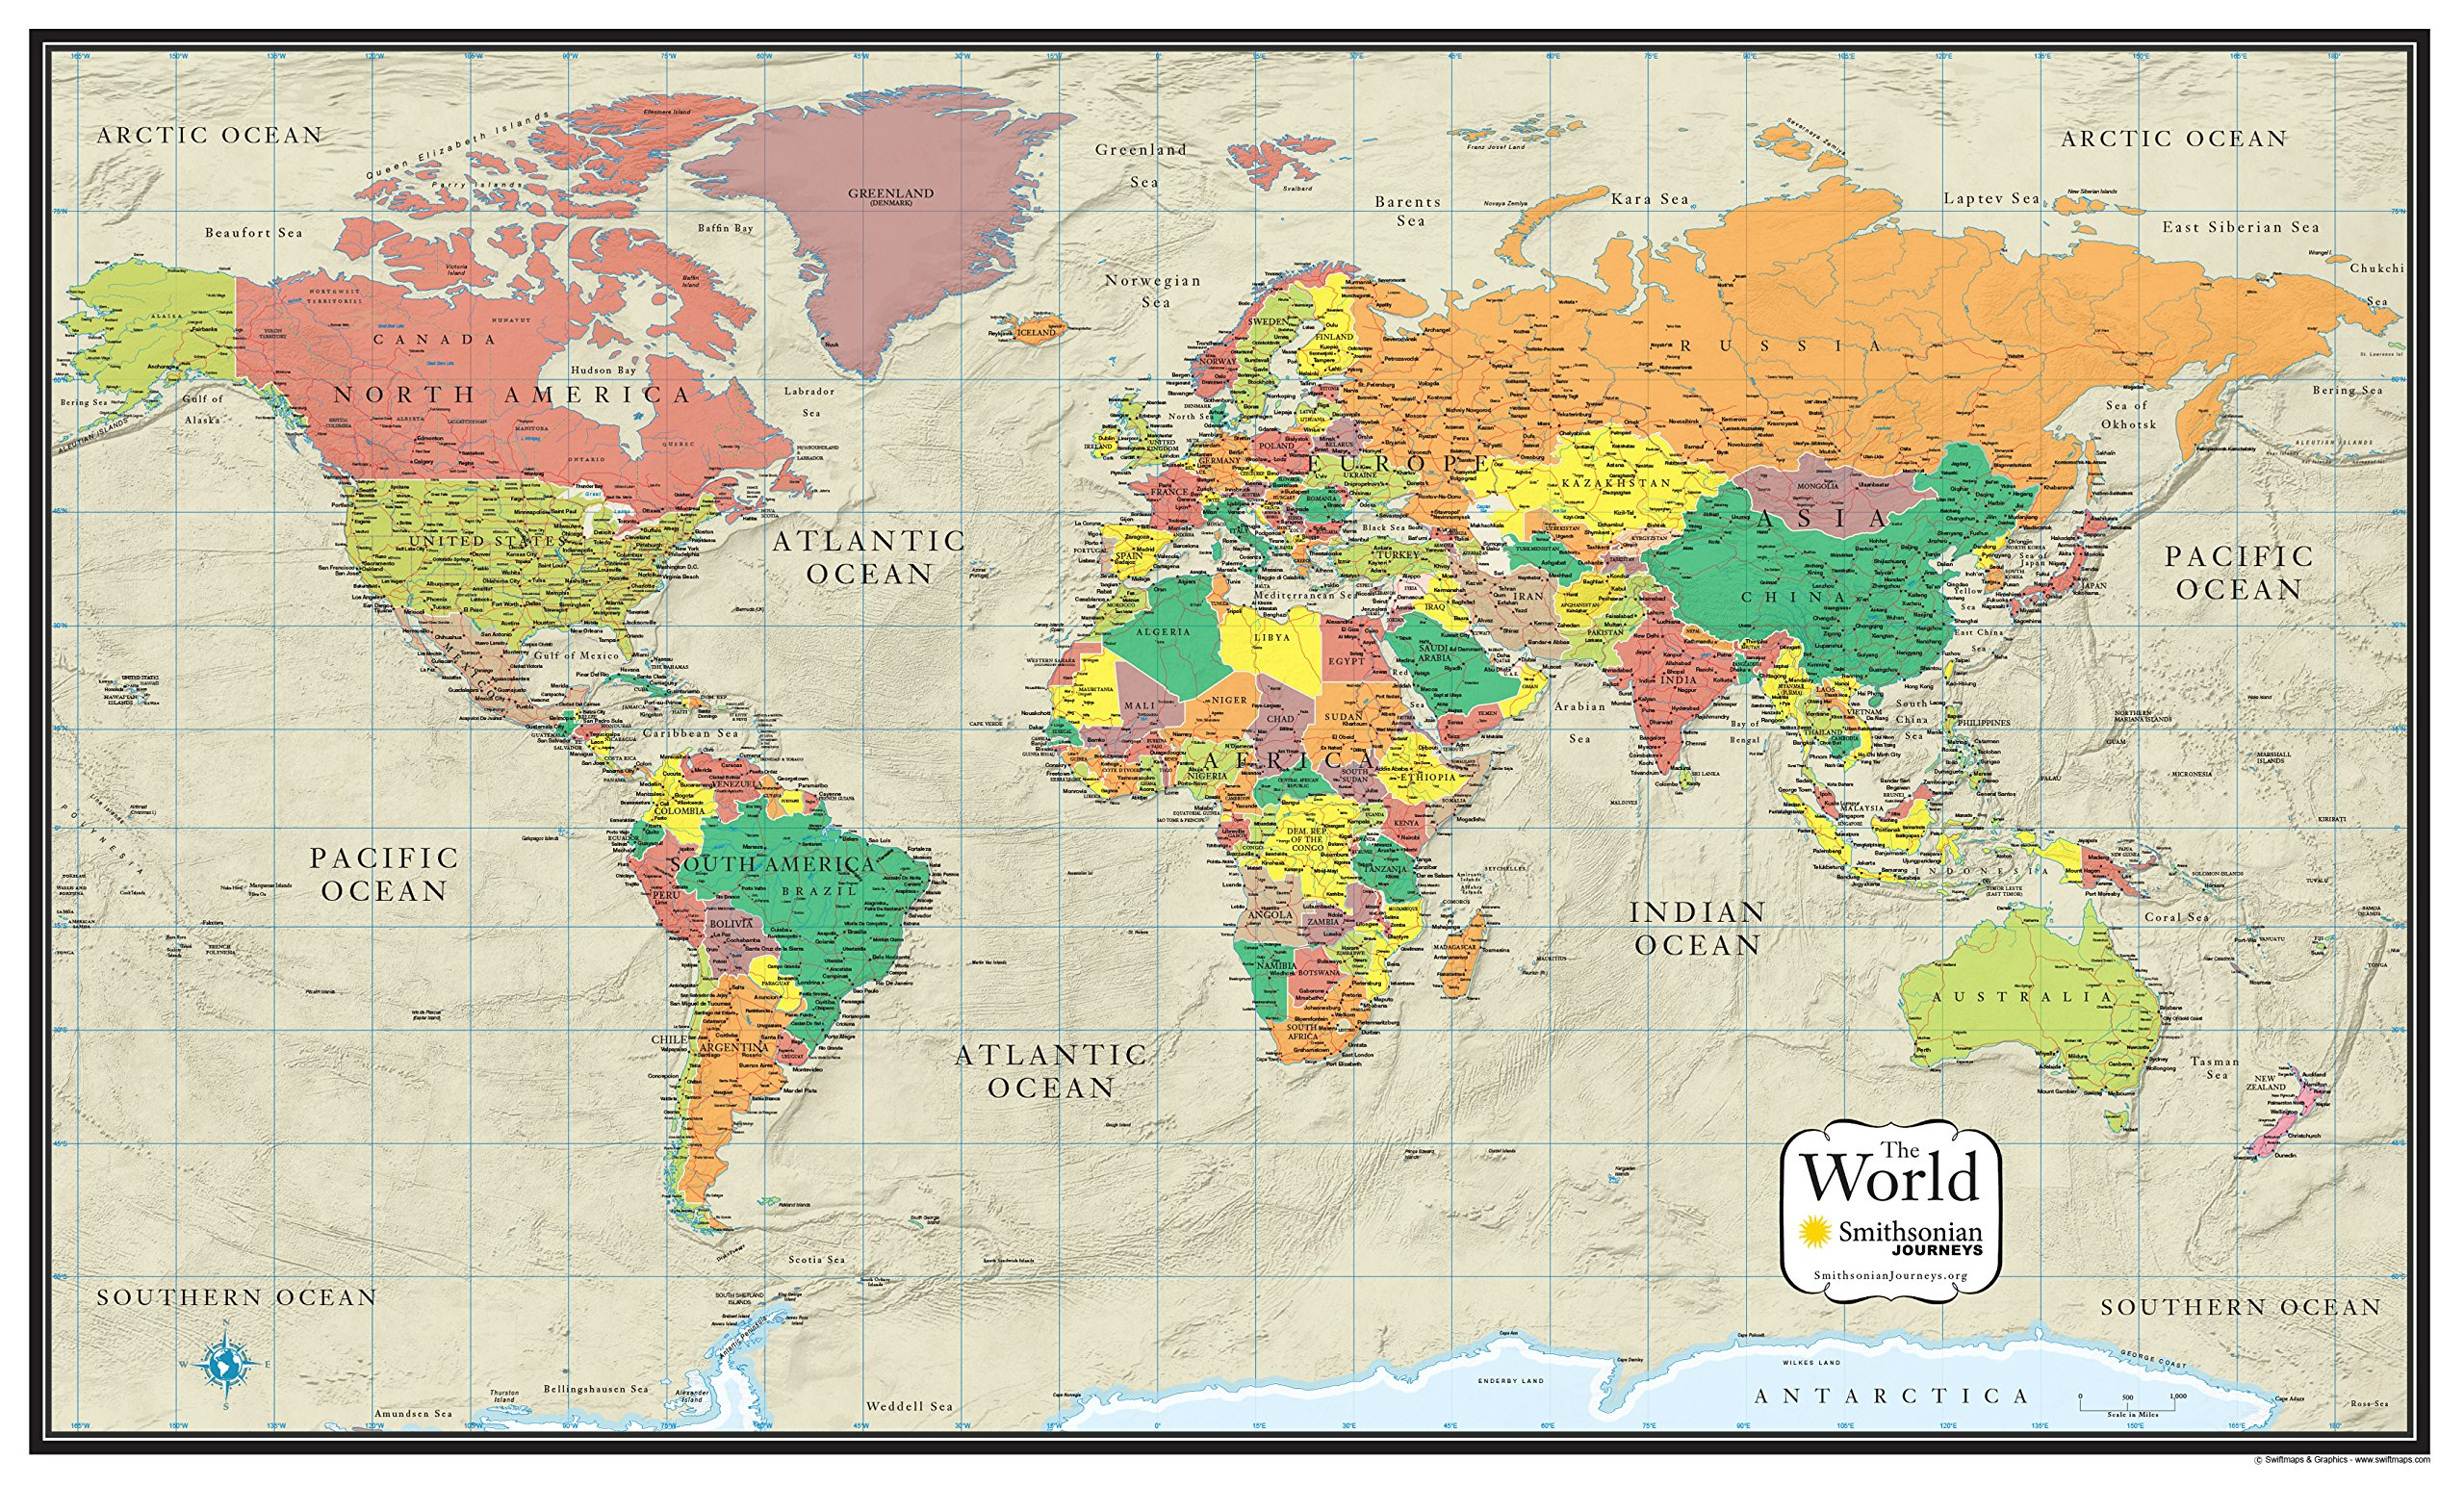 48x78 World Wall Map by Smithsonian Journeys - Tan Oceans Special Edition (48x78 Laminated) by Smithsonian Journeys